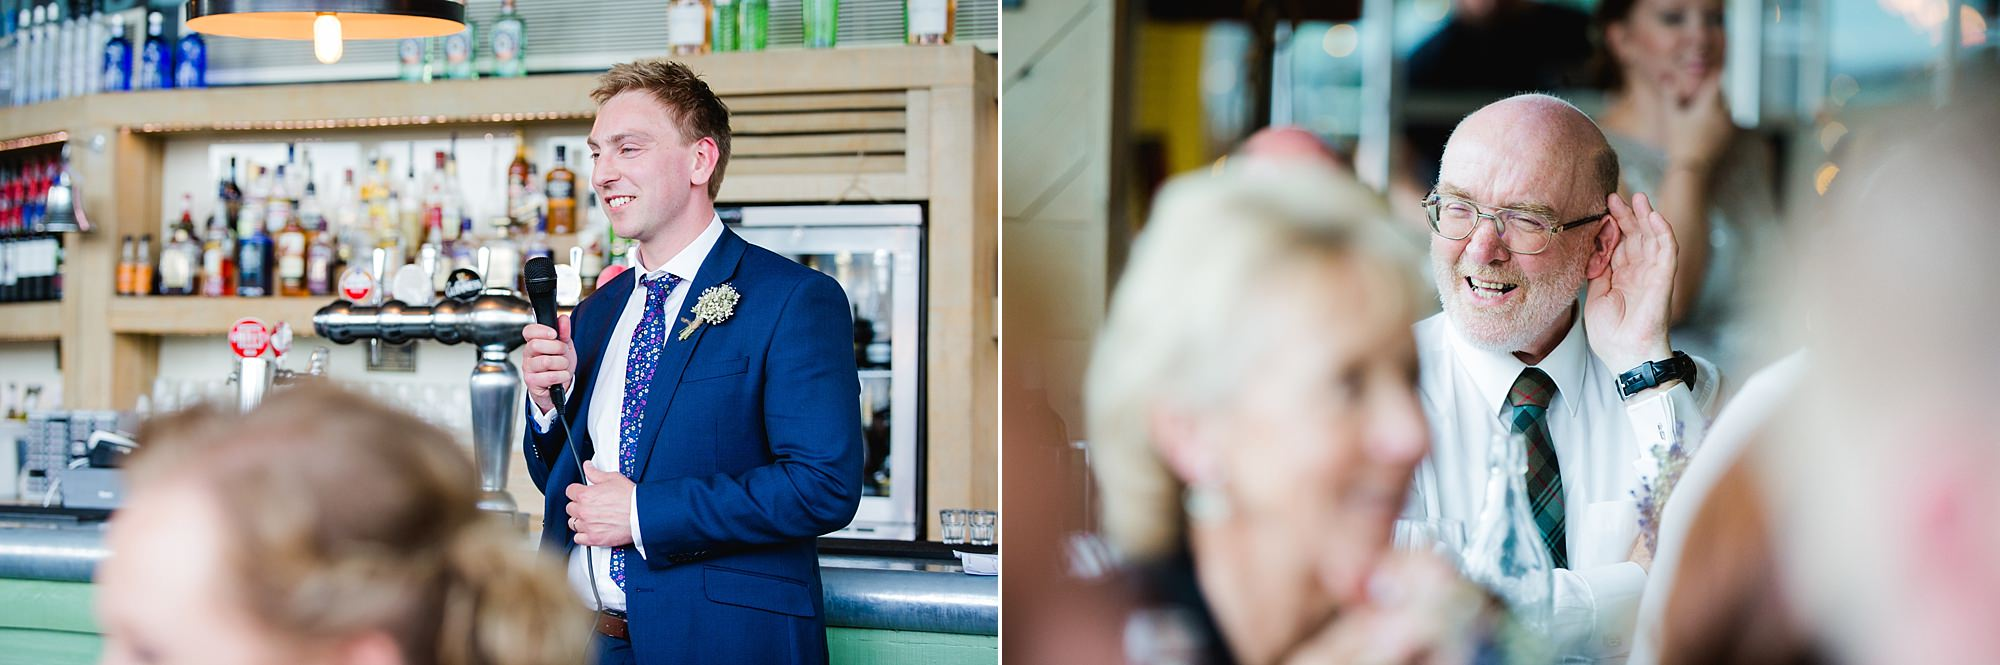 oyster shed wedding portraot of groom giving speech